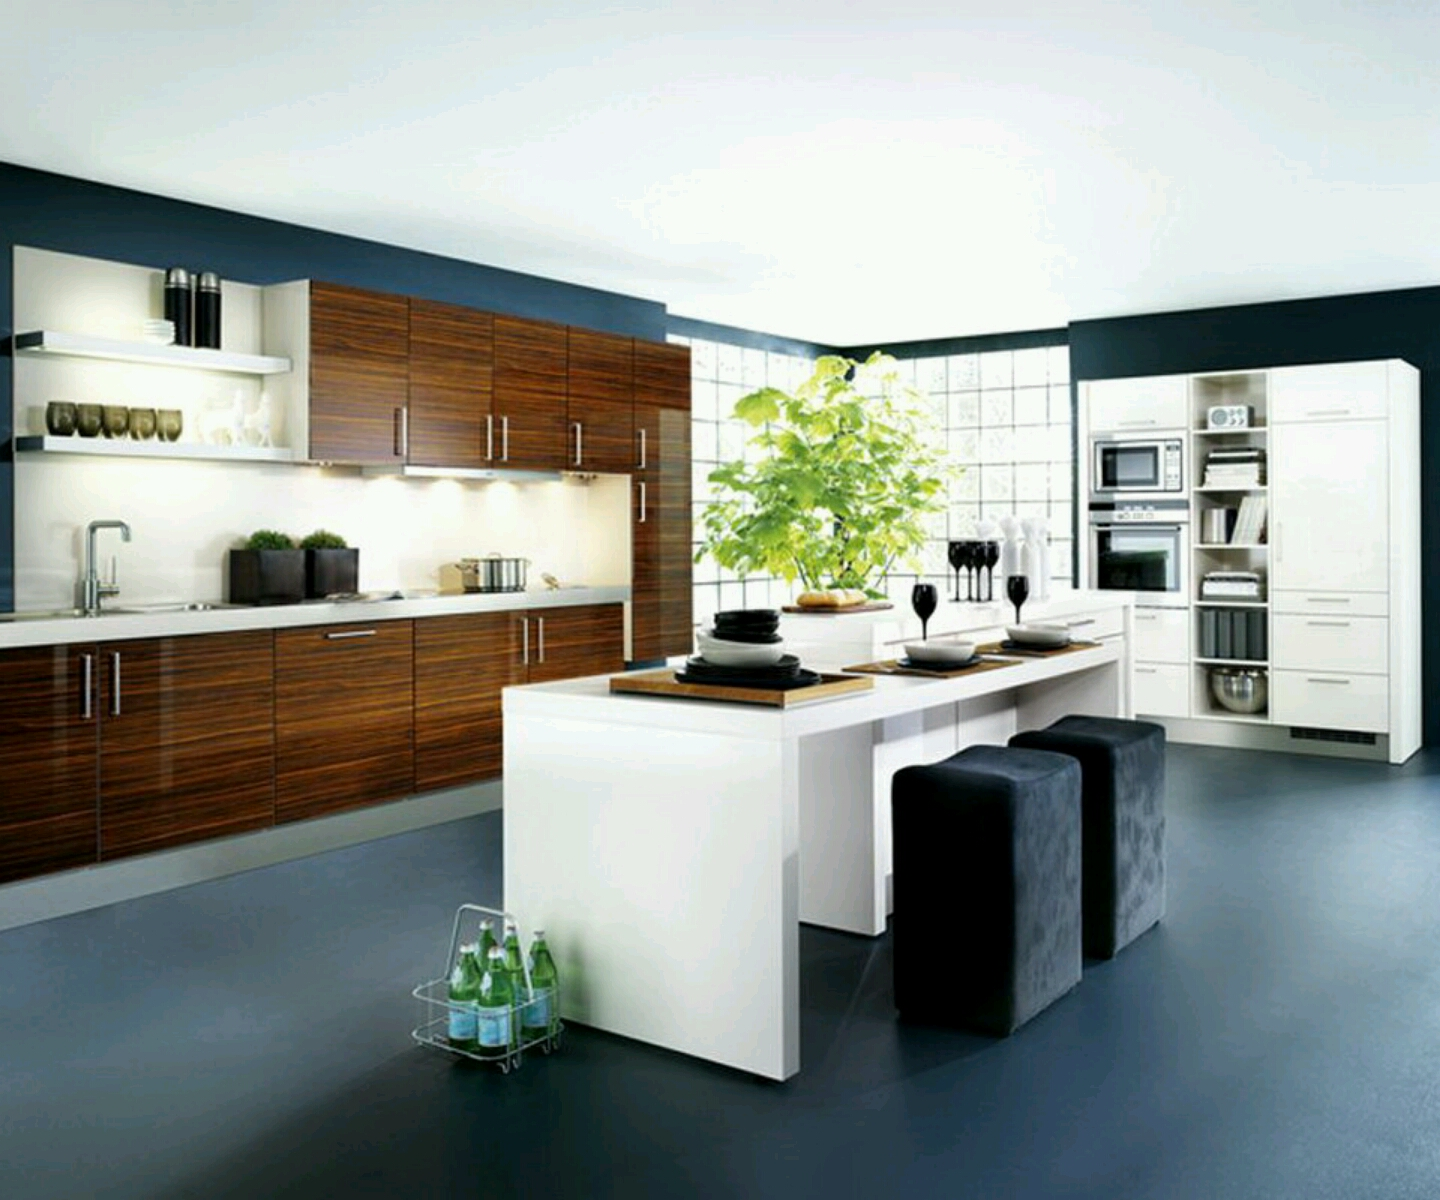 New home designs latest kitchen cabinets designs modern for Contemporary kitchen style